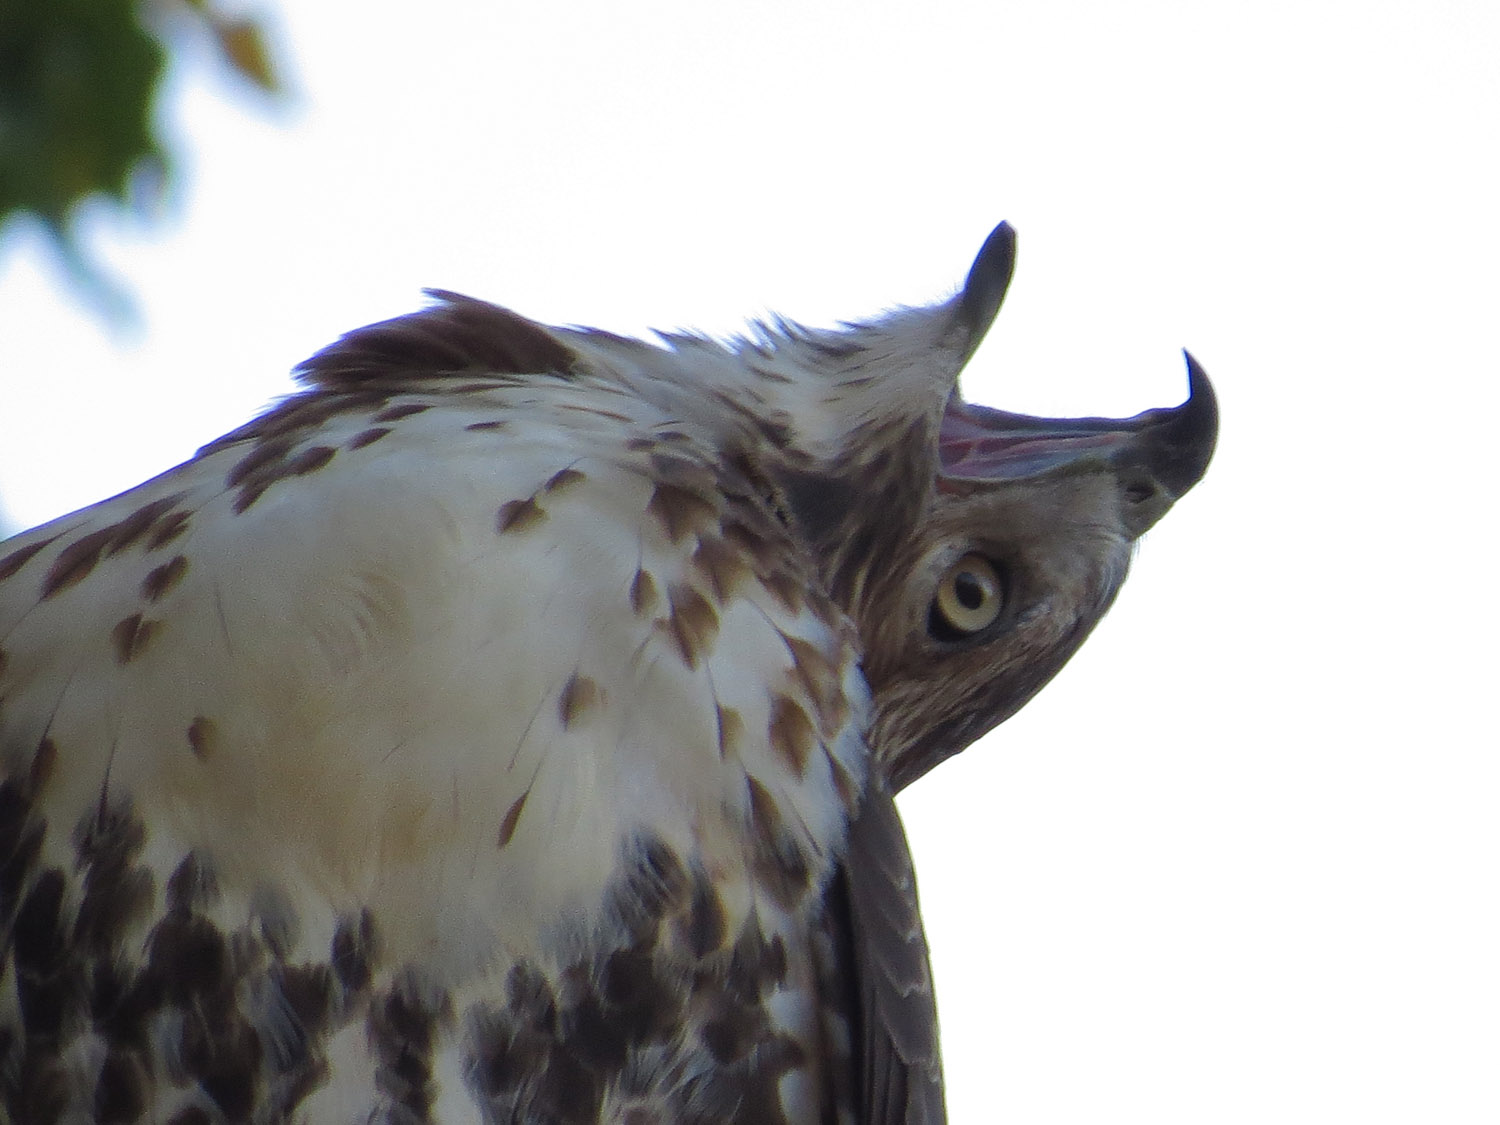 First-year hawk, over Terrace Drive north of the Bandshell, Oct. 23, 2016